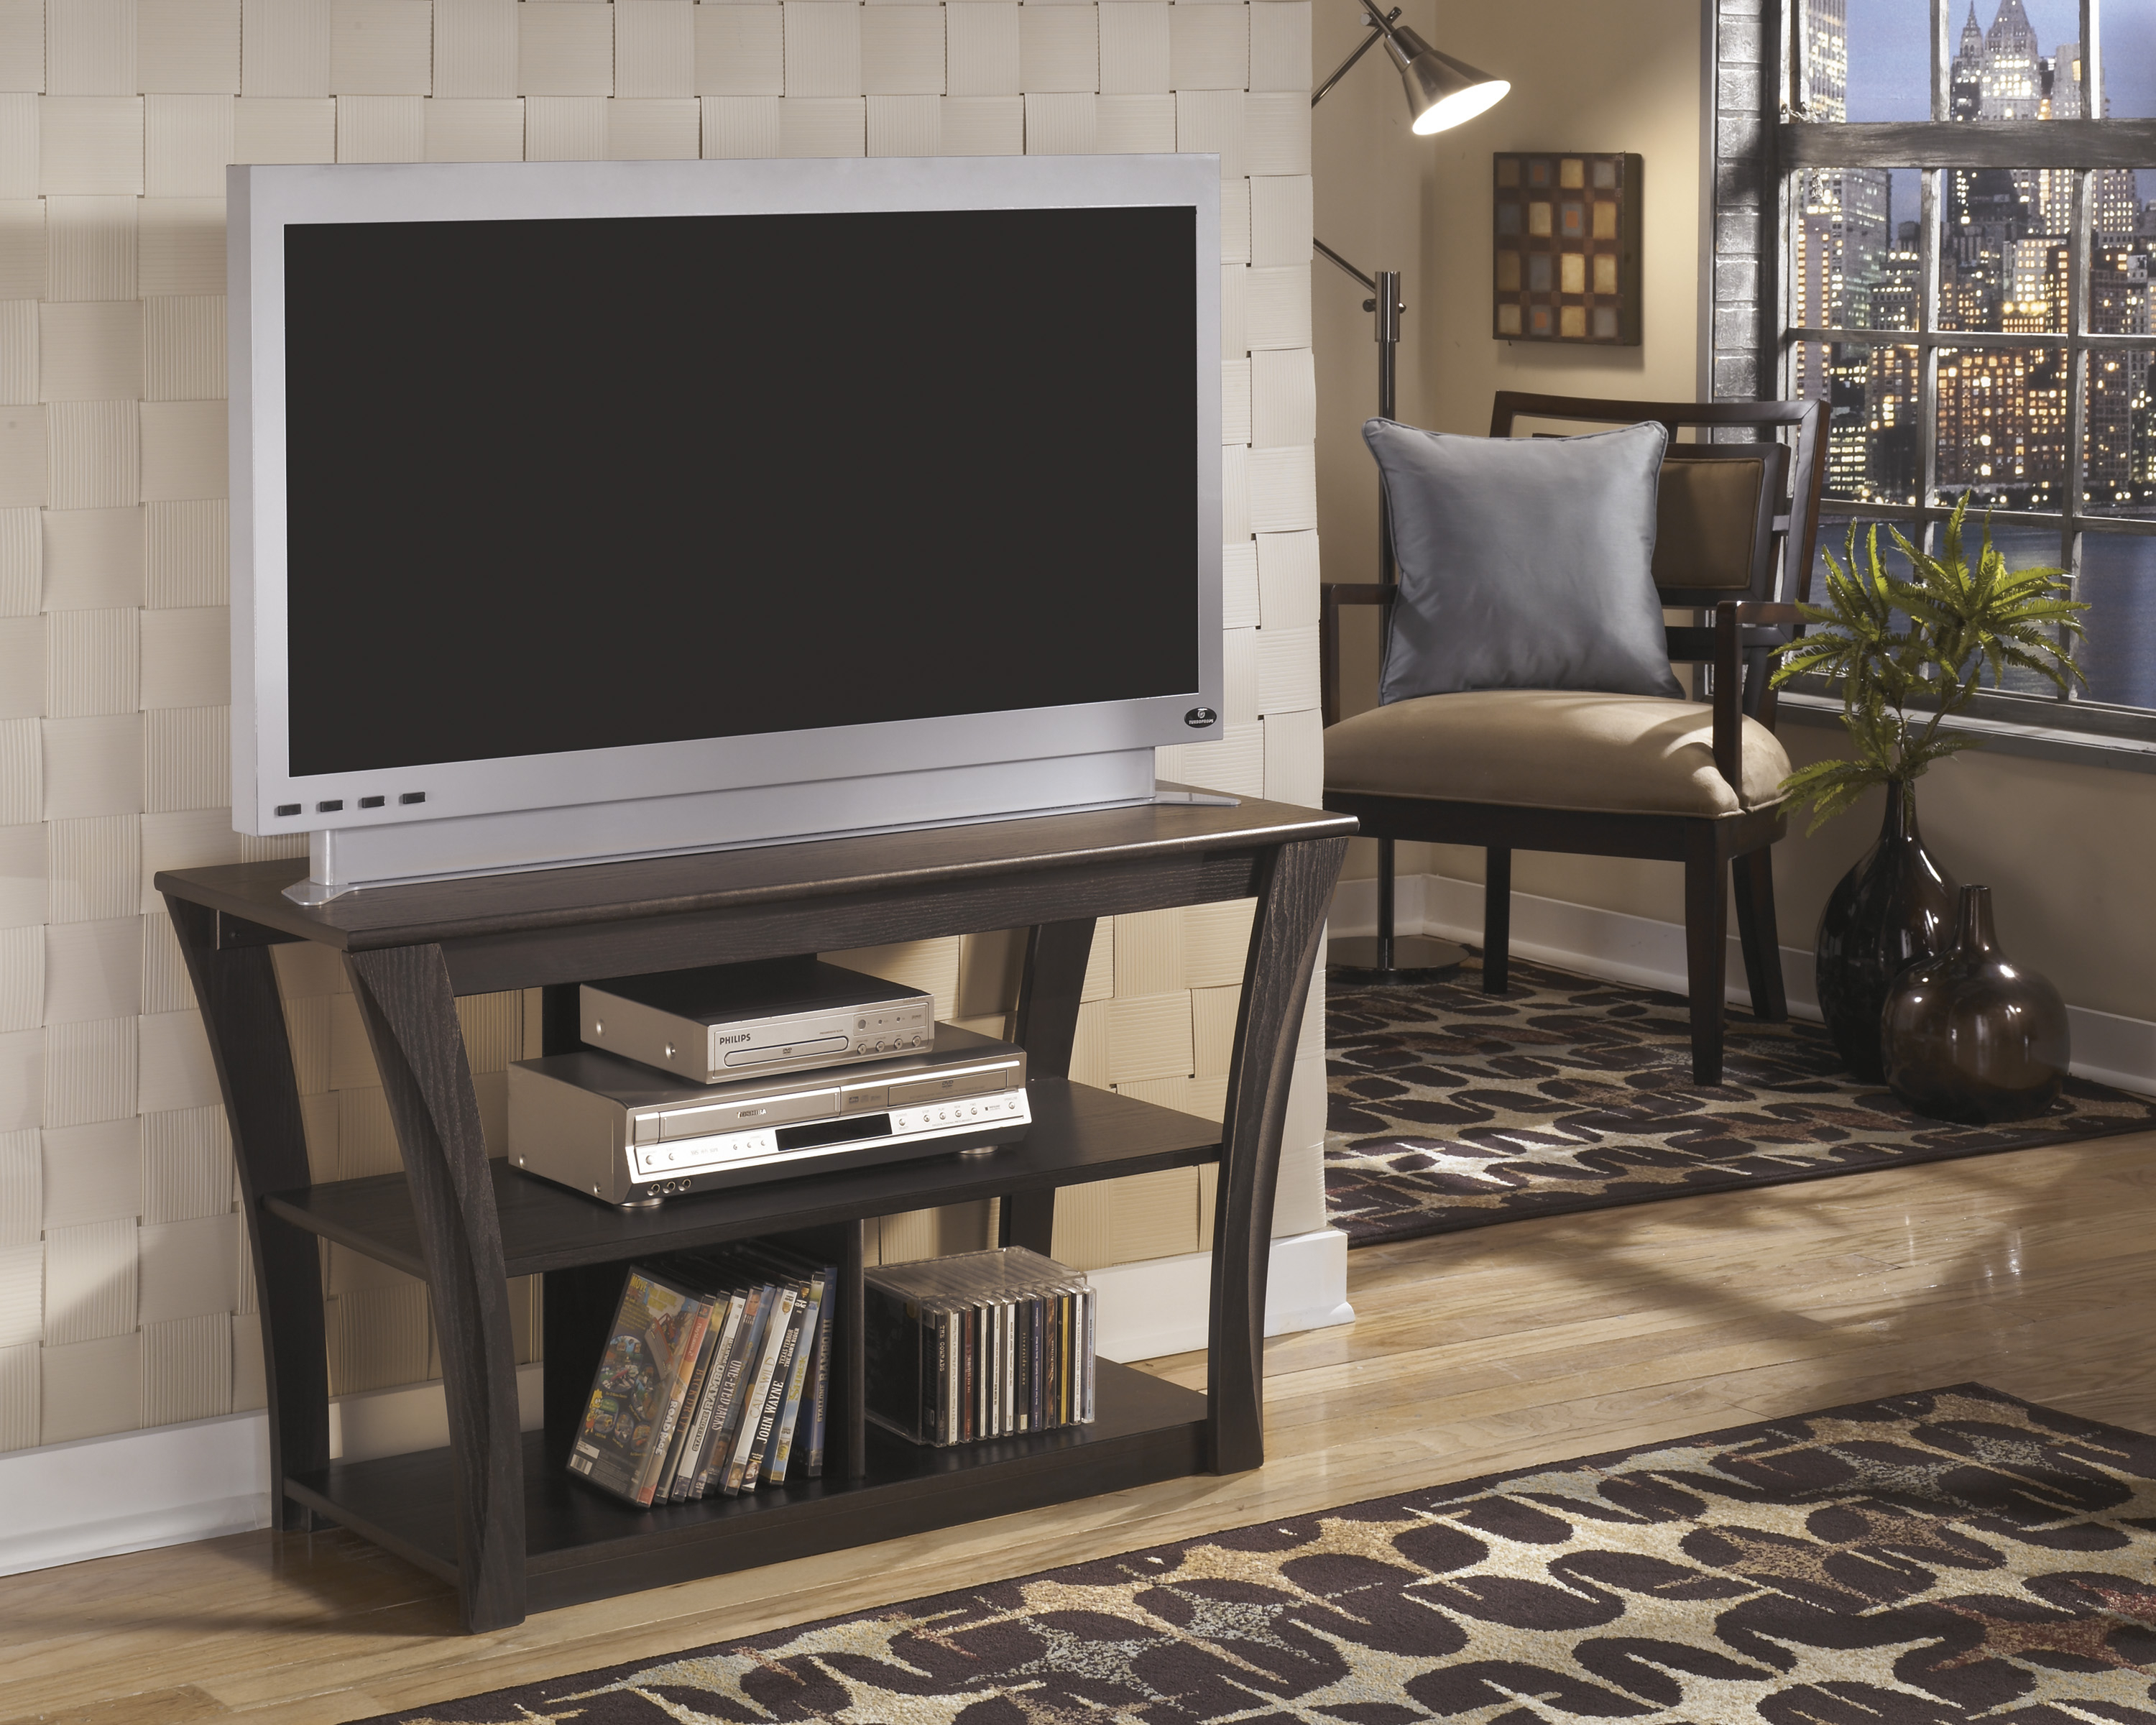 Https://www.localfurnitureoutlet/mattresses.html 2018-11-15 throughout Jaxon 71 Inch Tv Stands (Image 7 of 30)